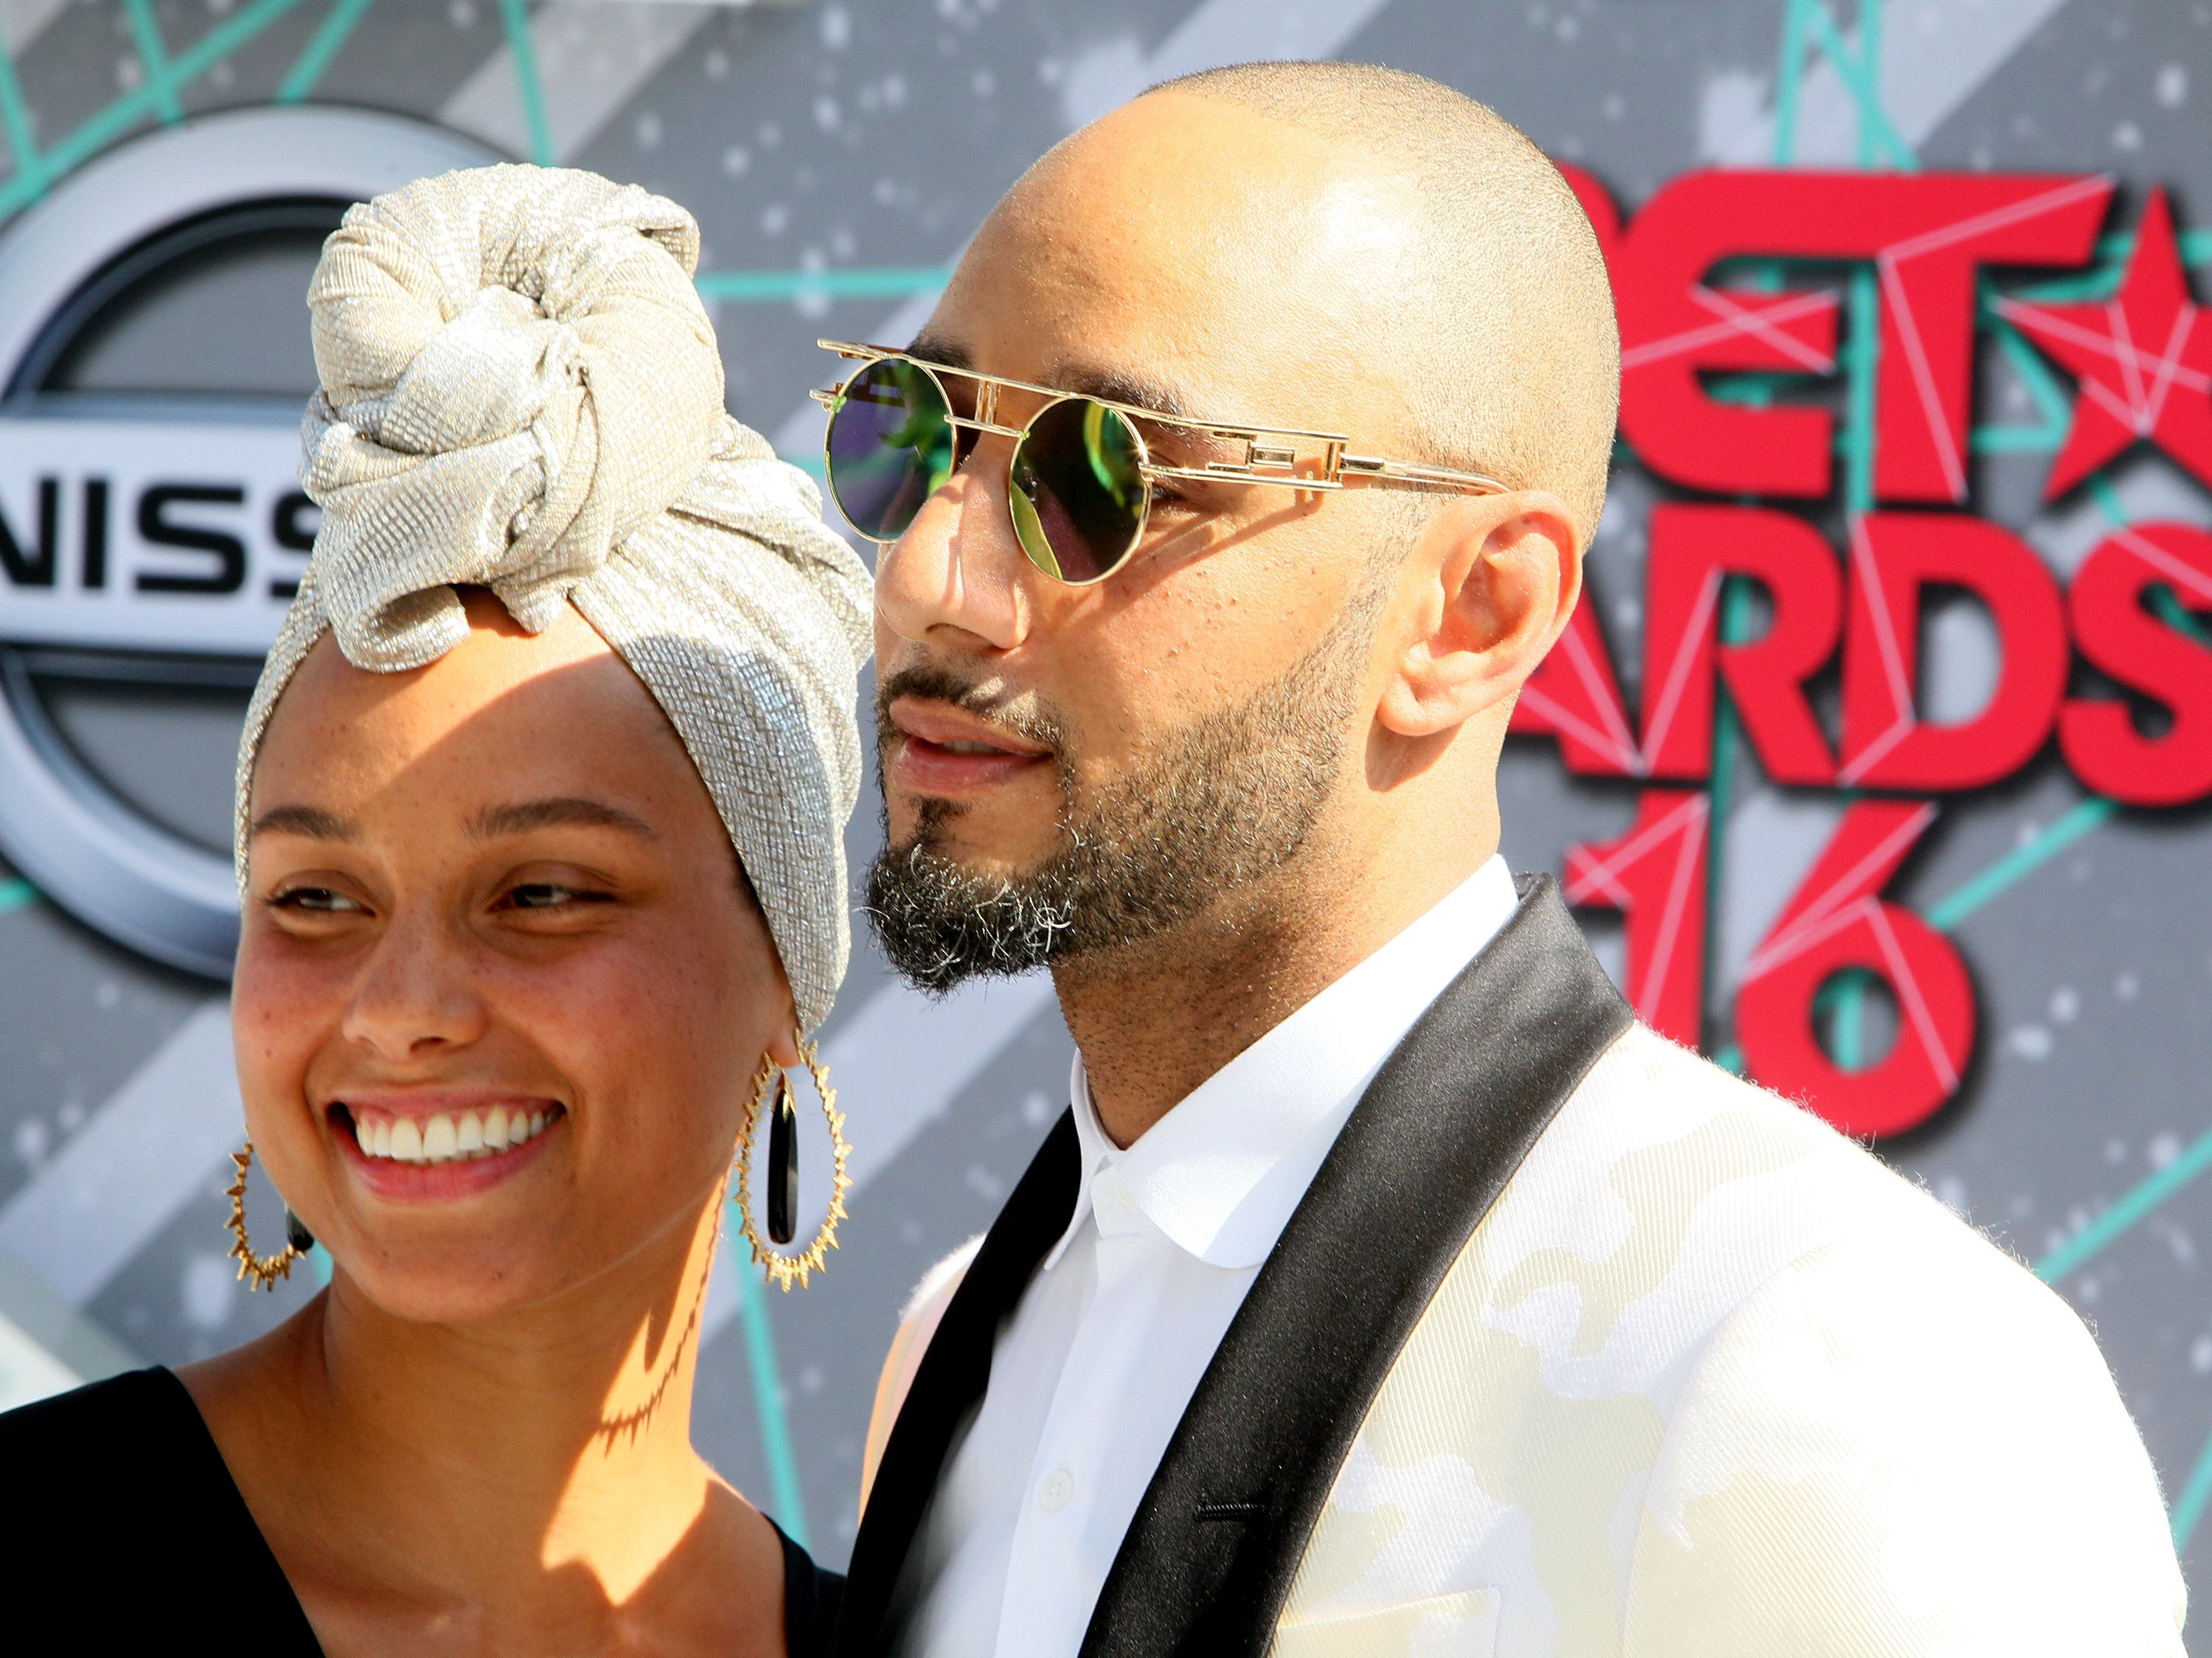 LOS ANGELES, CA - JUNE 26:  Singer Alicia Keys (L) and Swizz Beatz attend the 2016 BET Awards at Microsoft Theater on June 26, 2016 in Los Angeles, California.  (Photo by David Livingston/Getty Images)